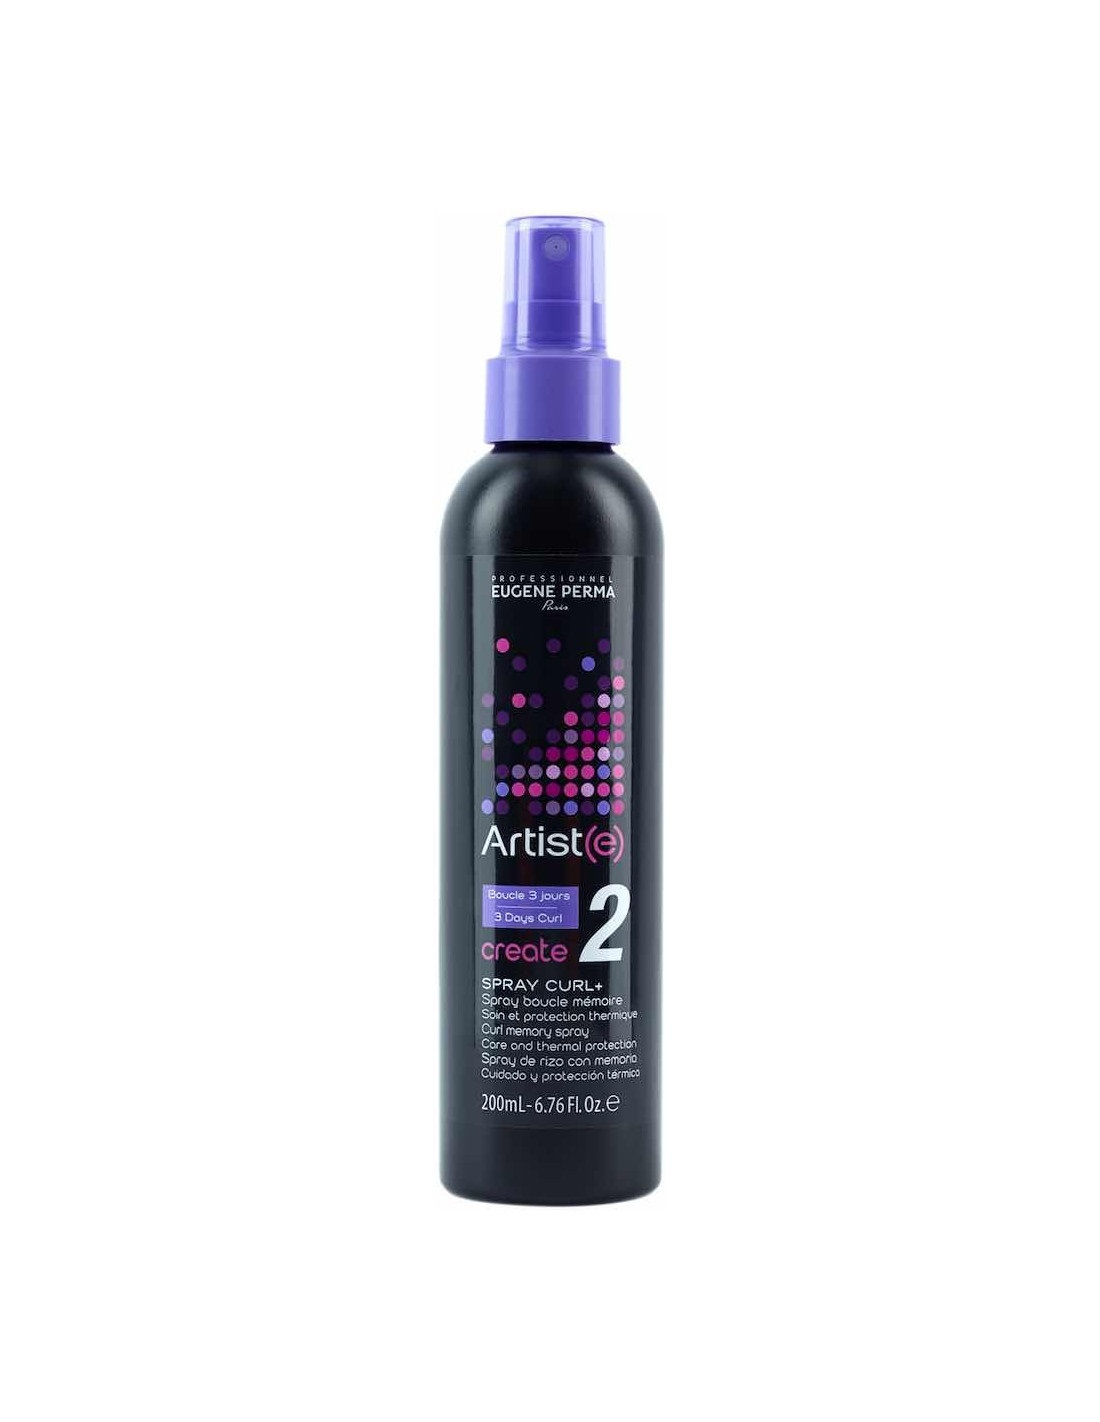 EUGENE PERMA ARTISTE SPRAY CURL 200ML